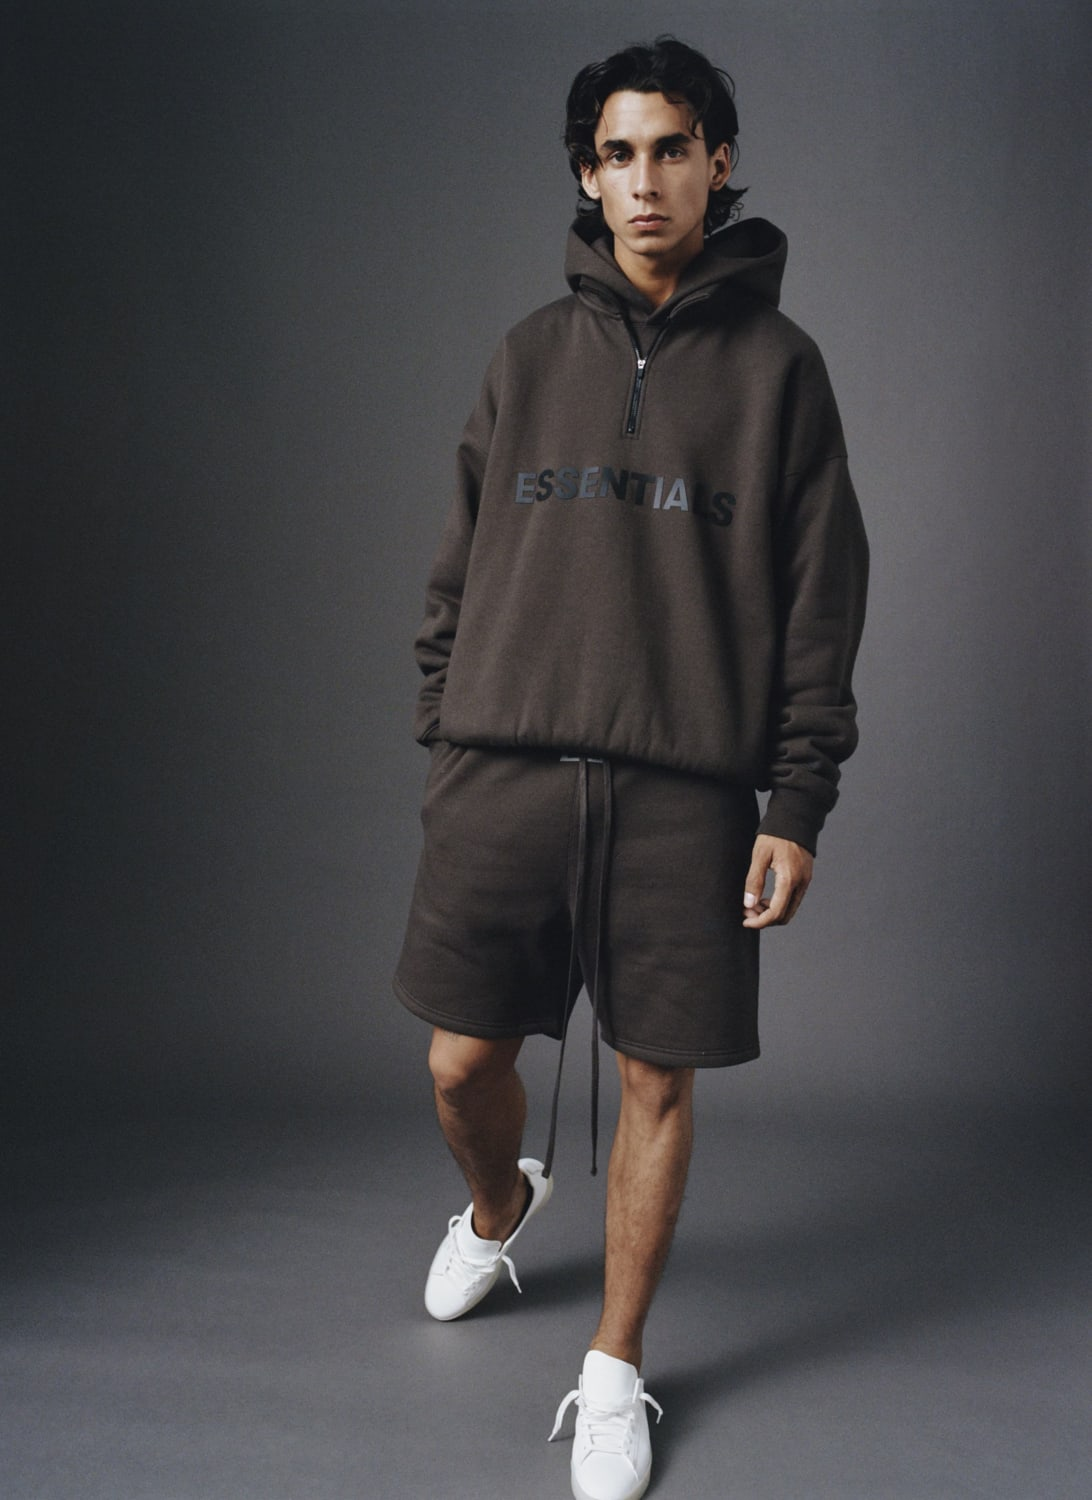 Essentials FW 2020 Lookbook Look 08